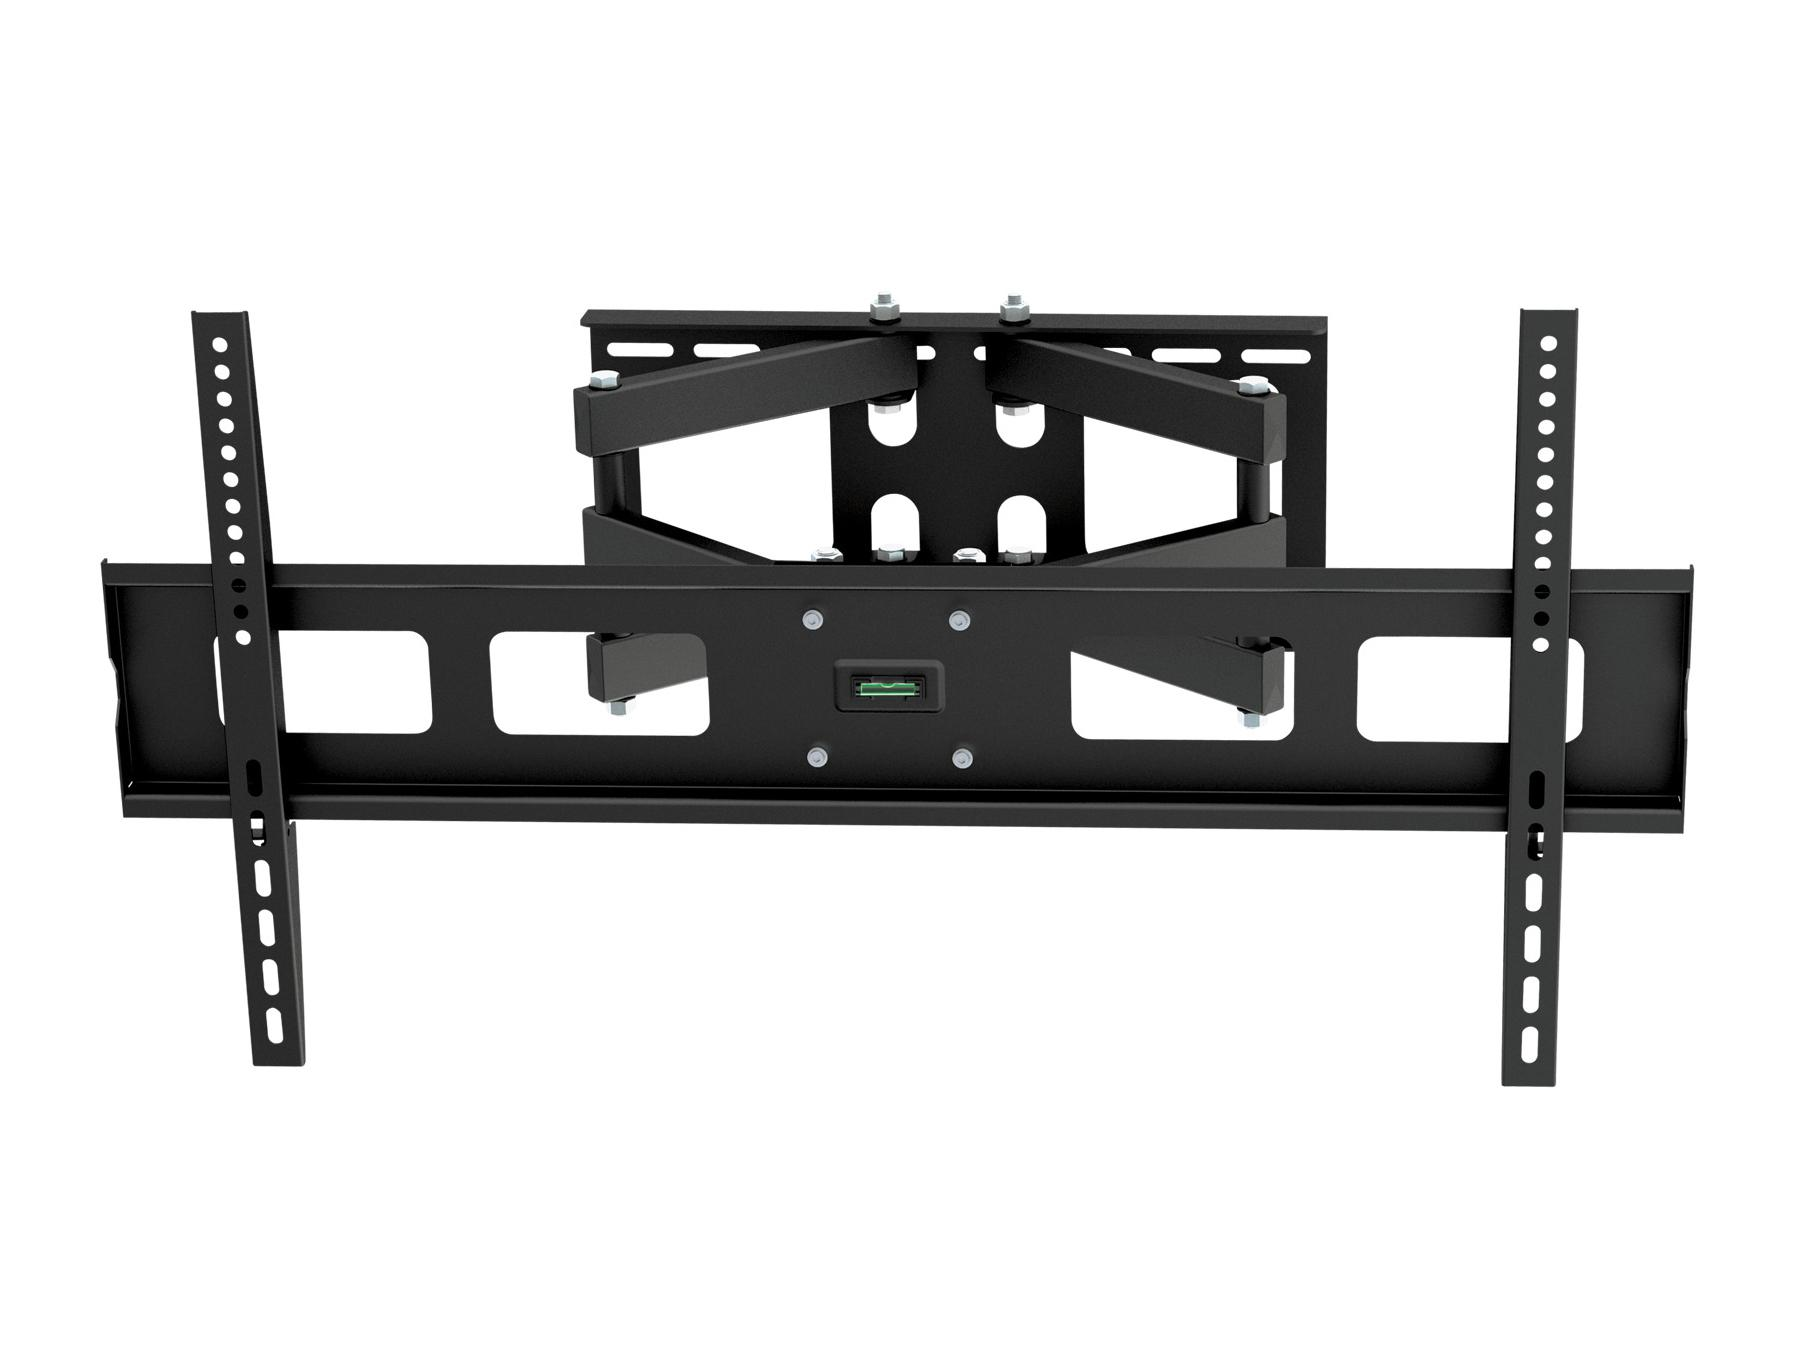 VZ-AM03 Wall Mount for 40 inch to 55 inch monitors by ViewZ